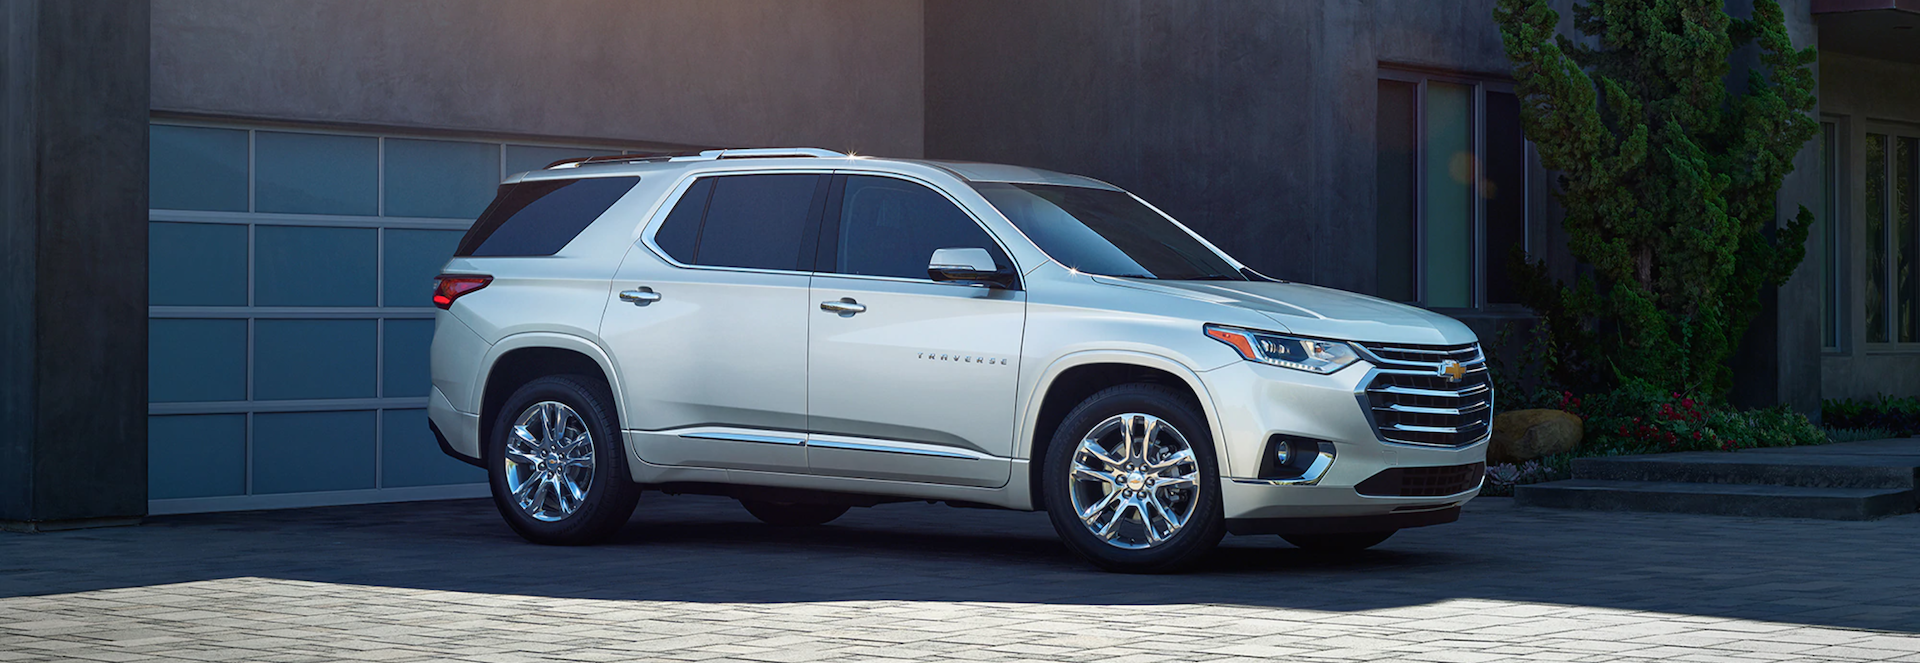 Test drive the New 2021 Chevrolet Traverse SUV